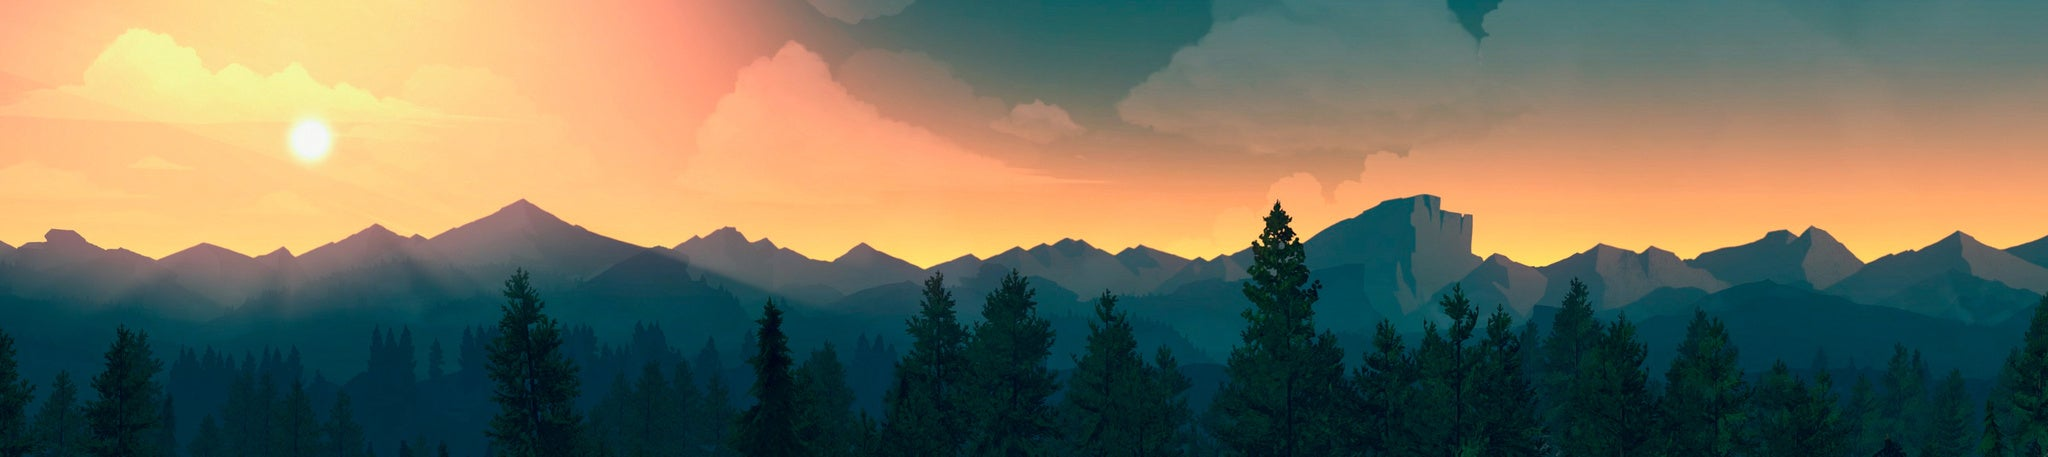 campo-santo firewatch steam wallpapers